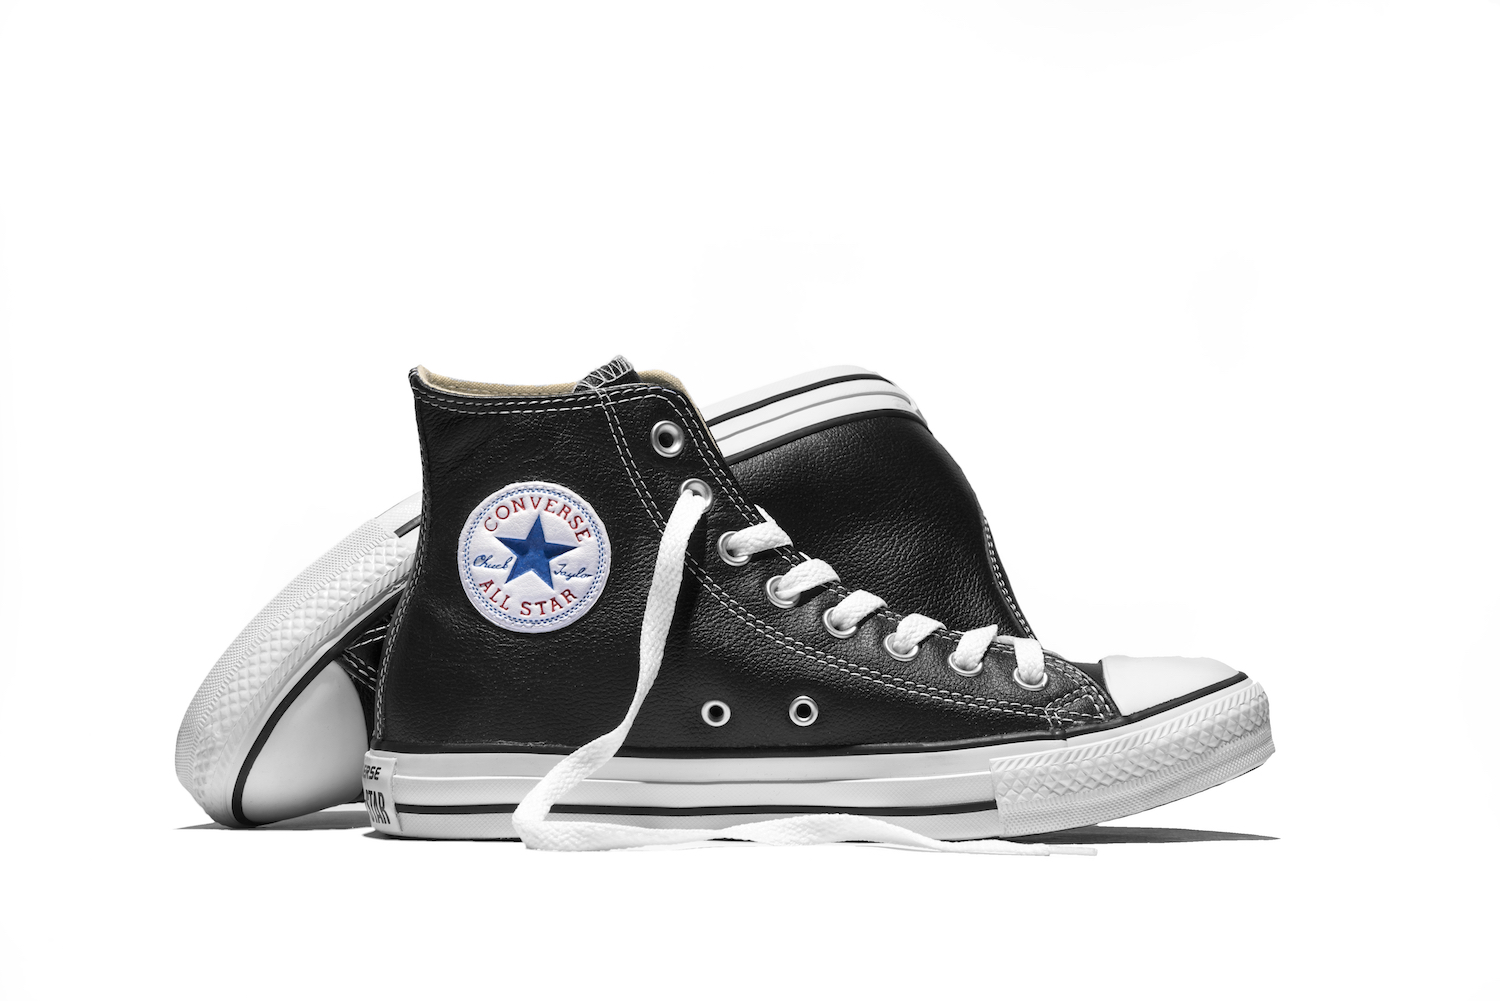 d6ed172ce935 CONVERSE CHUCK TAYLOR ALL STAR LEATHER NOW AVAILABLE AT CONVERSE ...